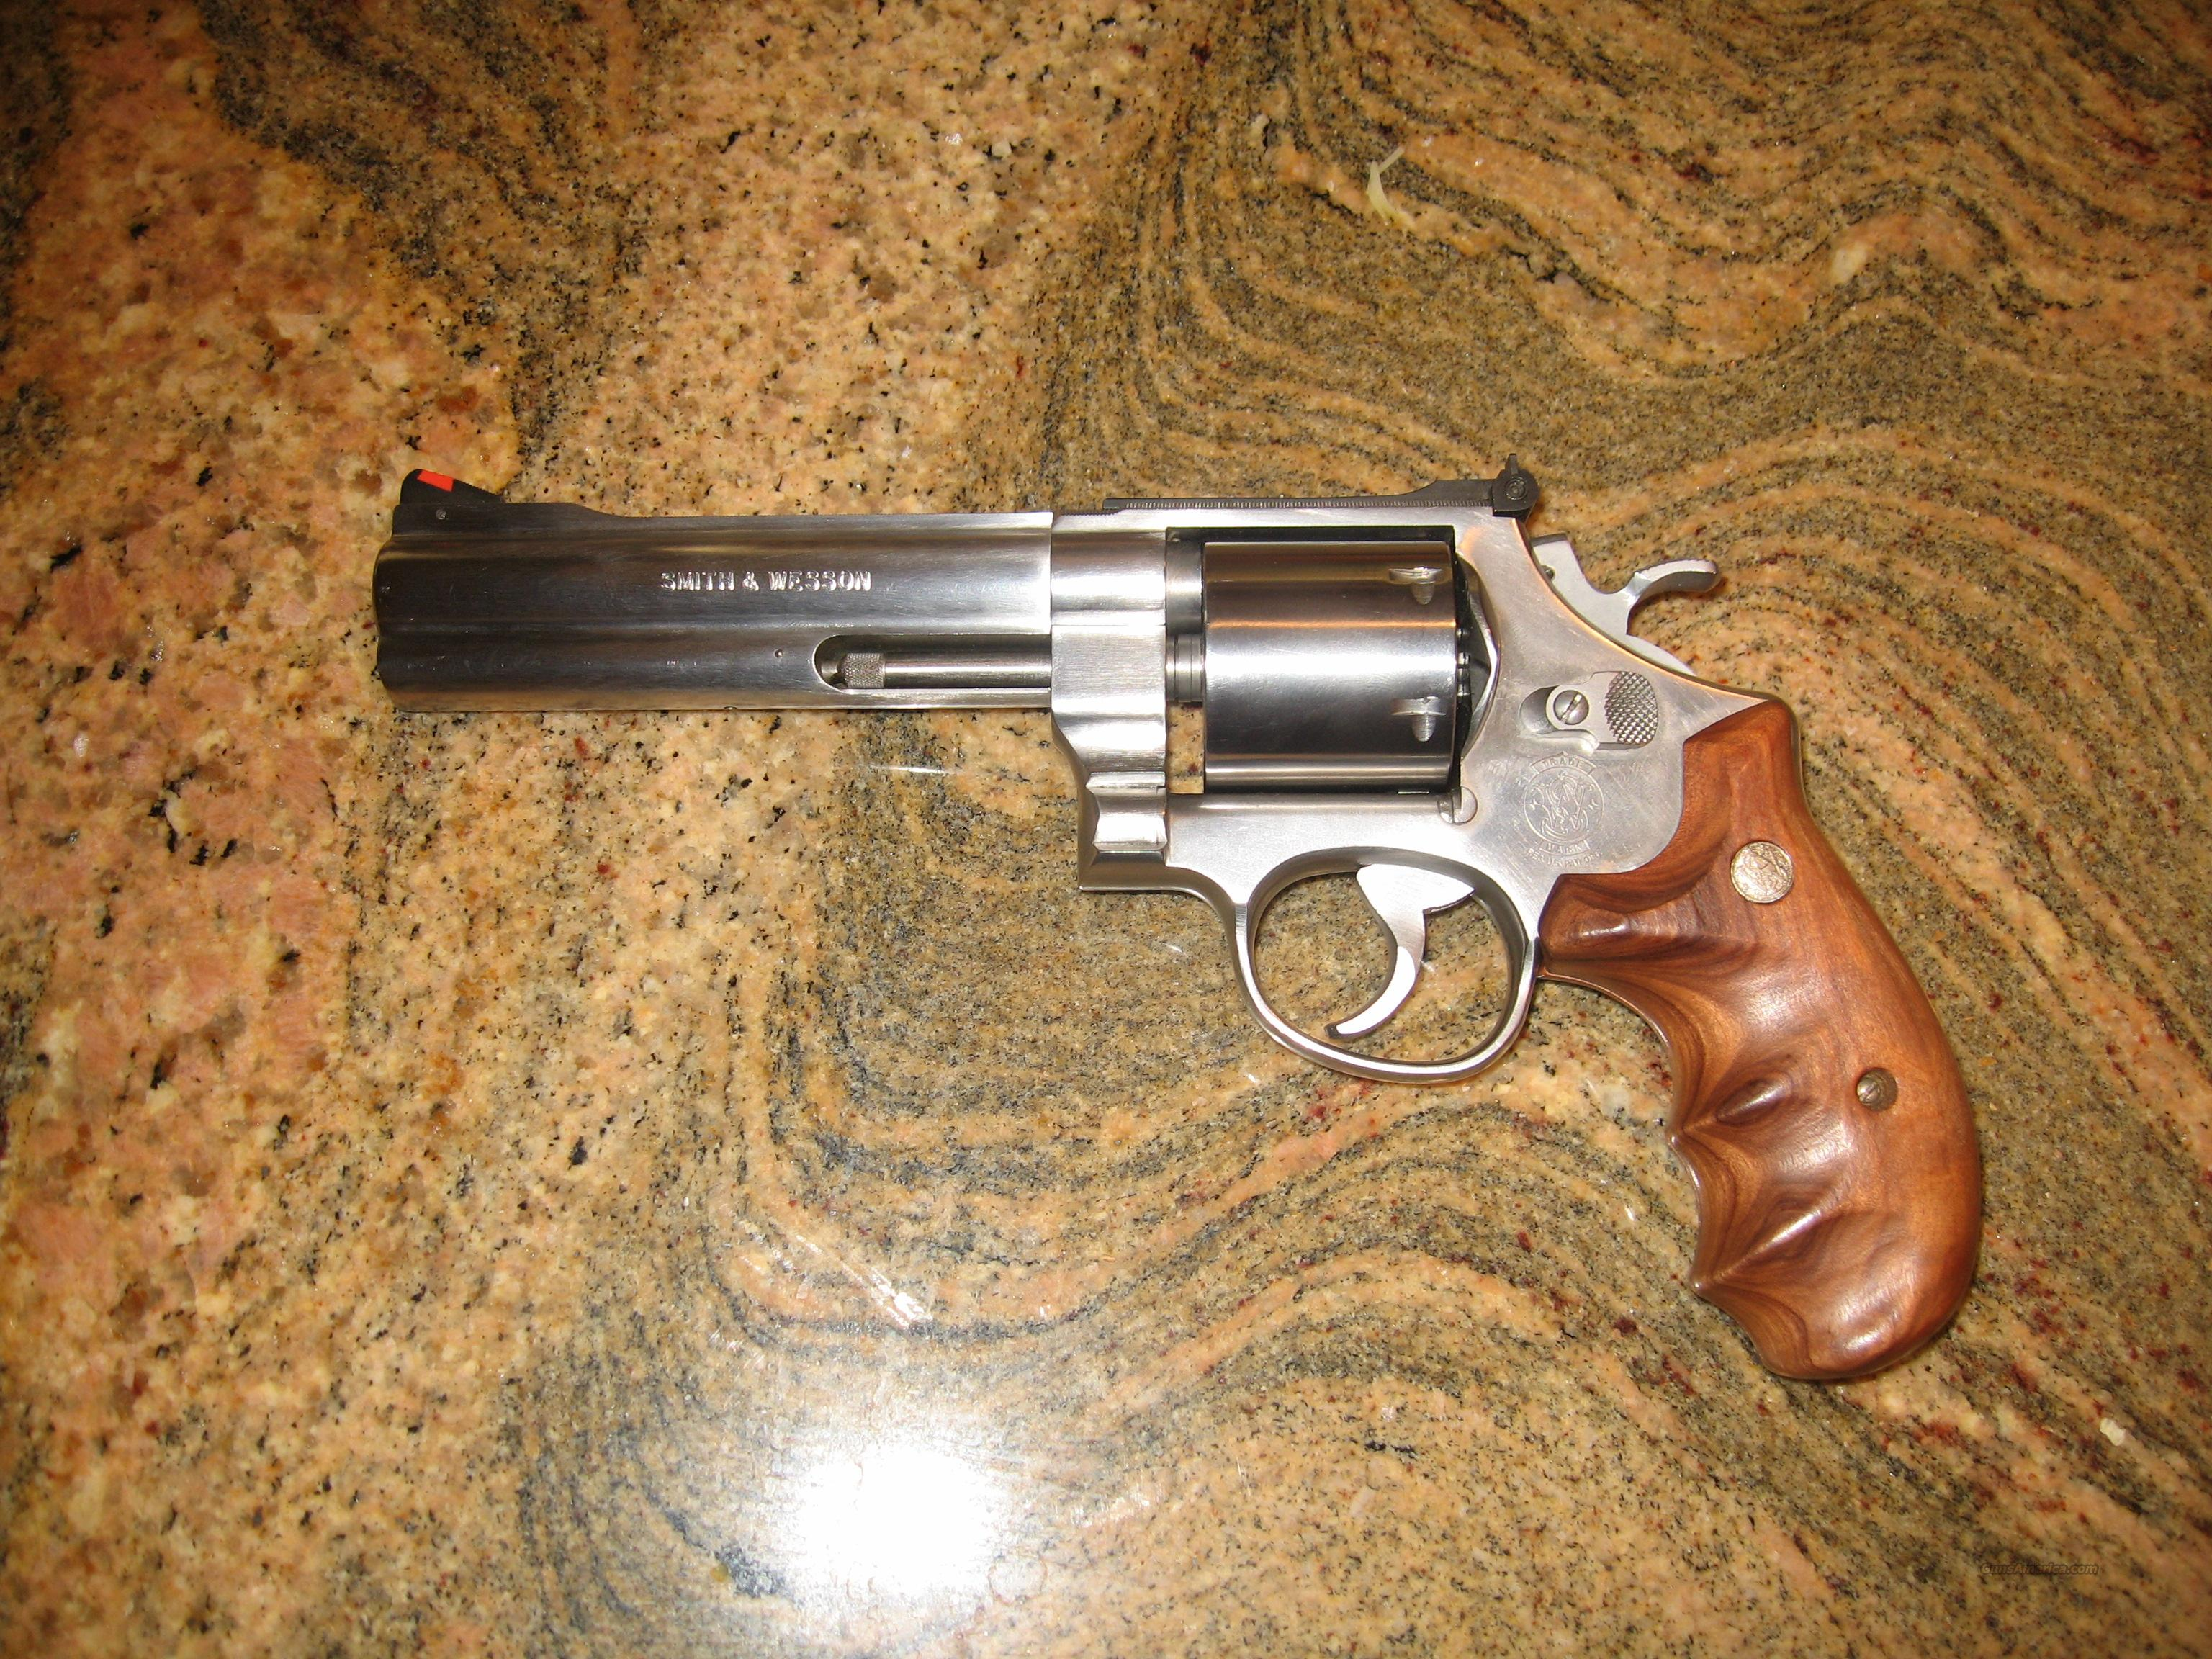 "Smith & Wesson Model 627 .357 Magnum Revolver, 5.5"" Barrel, Unfluted  Guns > Pistols > Smith & Wesson Revolvers > Full Frame Revolver"